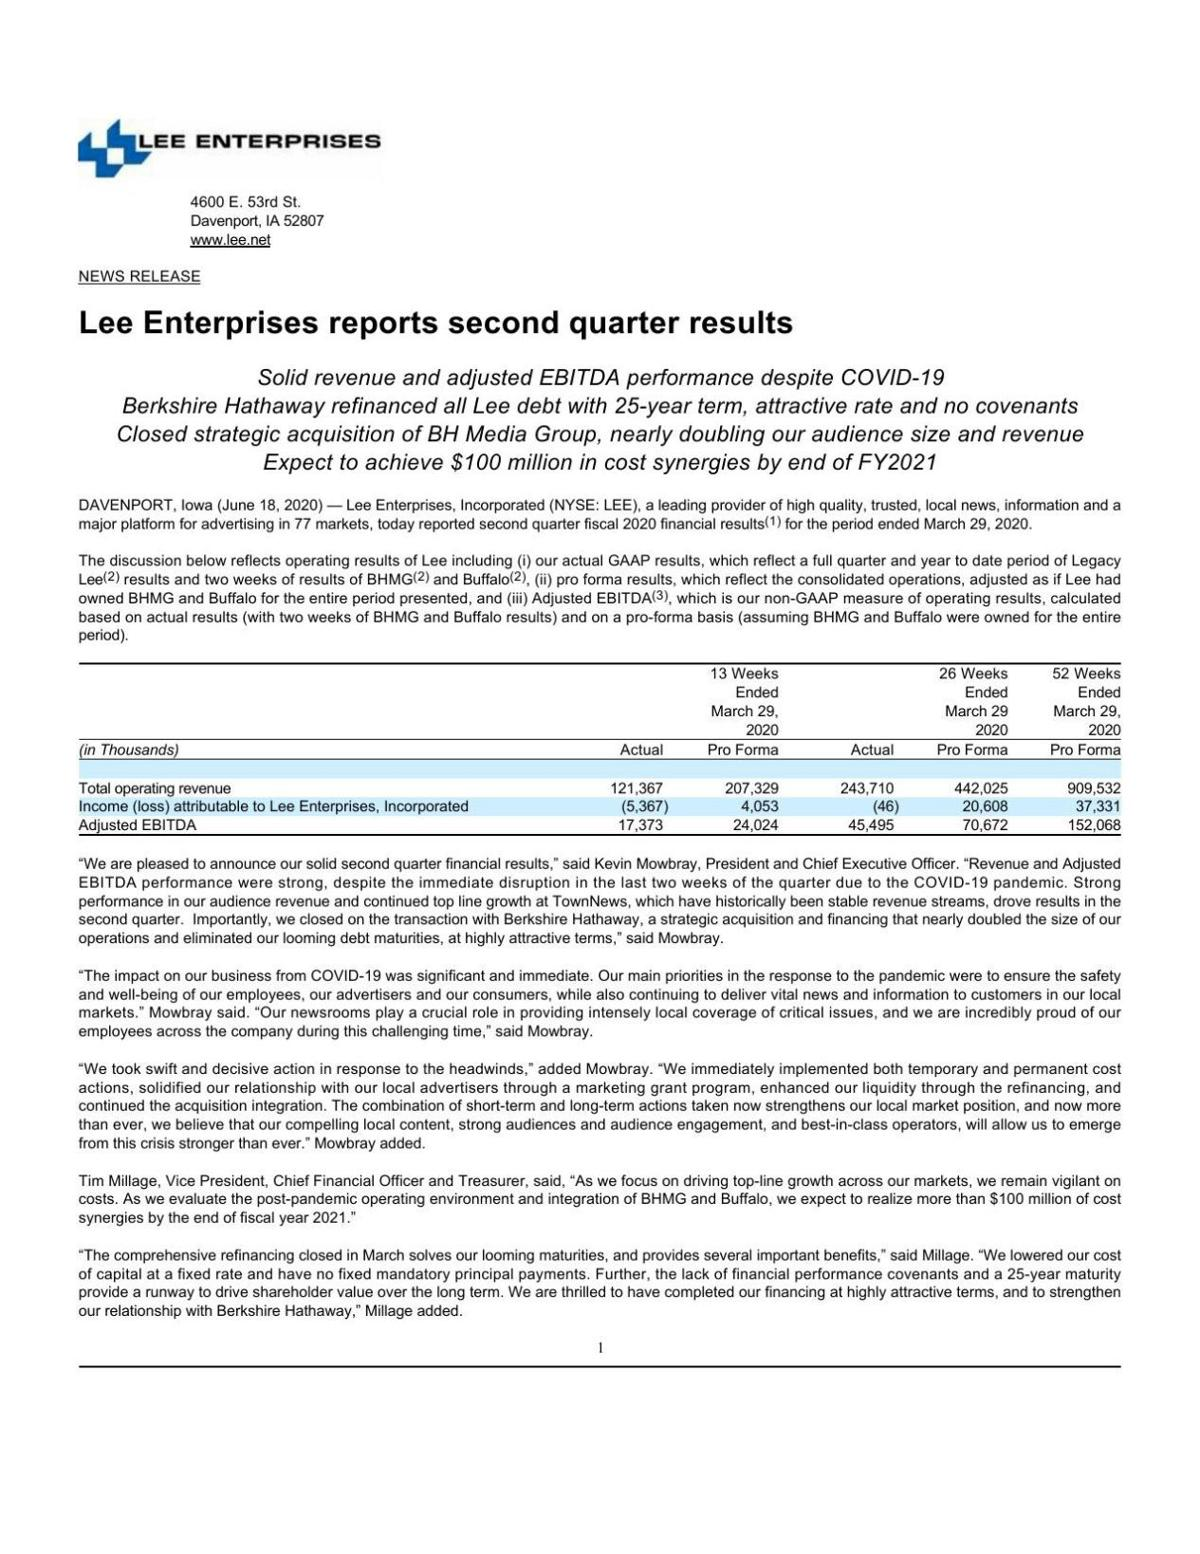 Lee Enterprises - Q2 FY20 Earnings Release